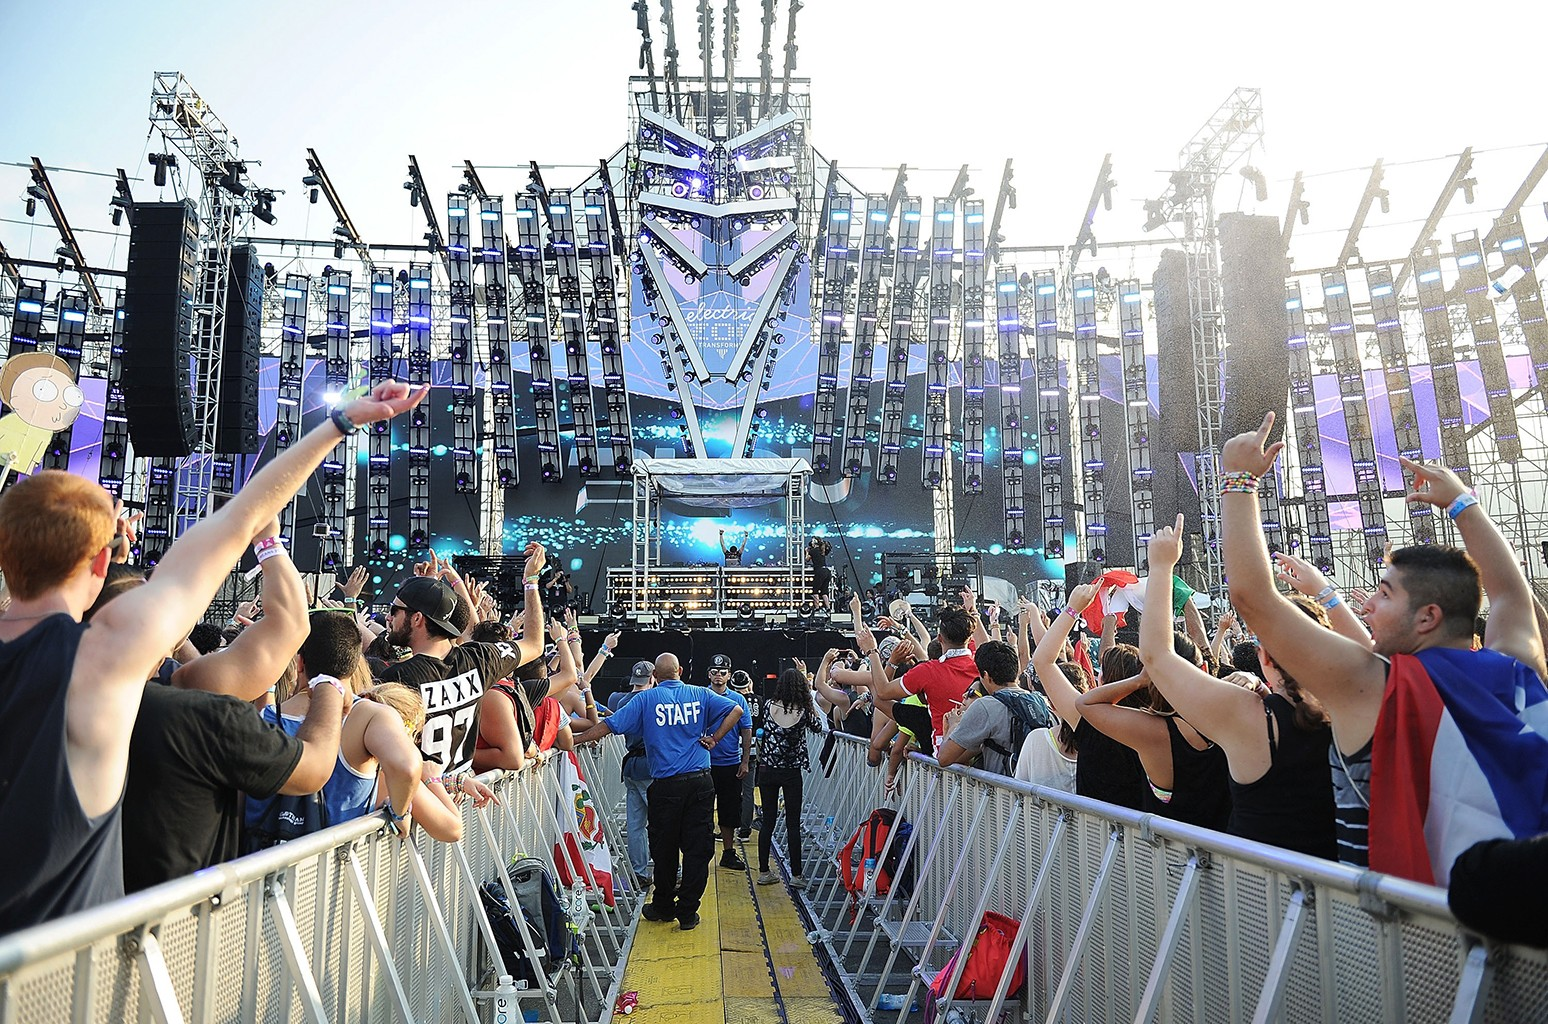 Audience at 2015 electric zoo